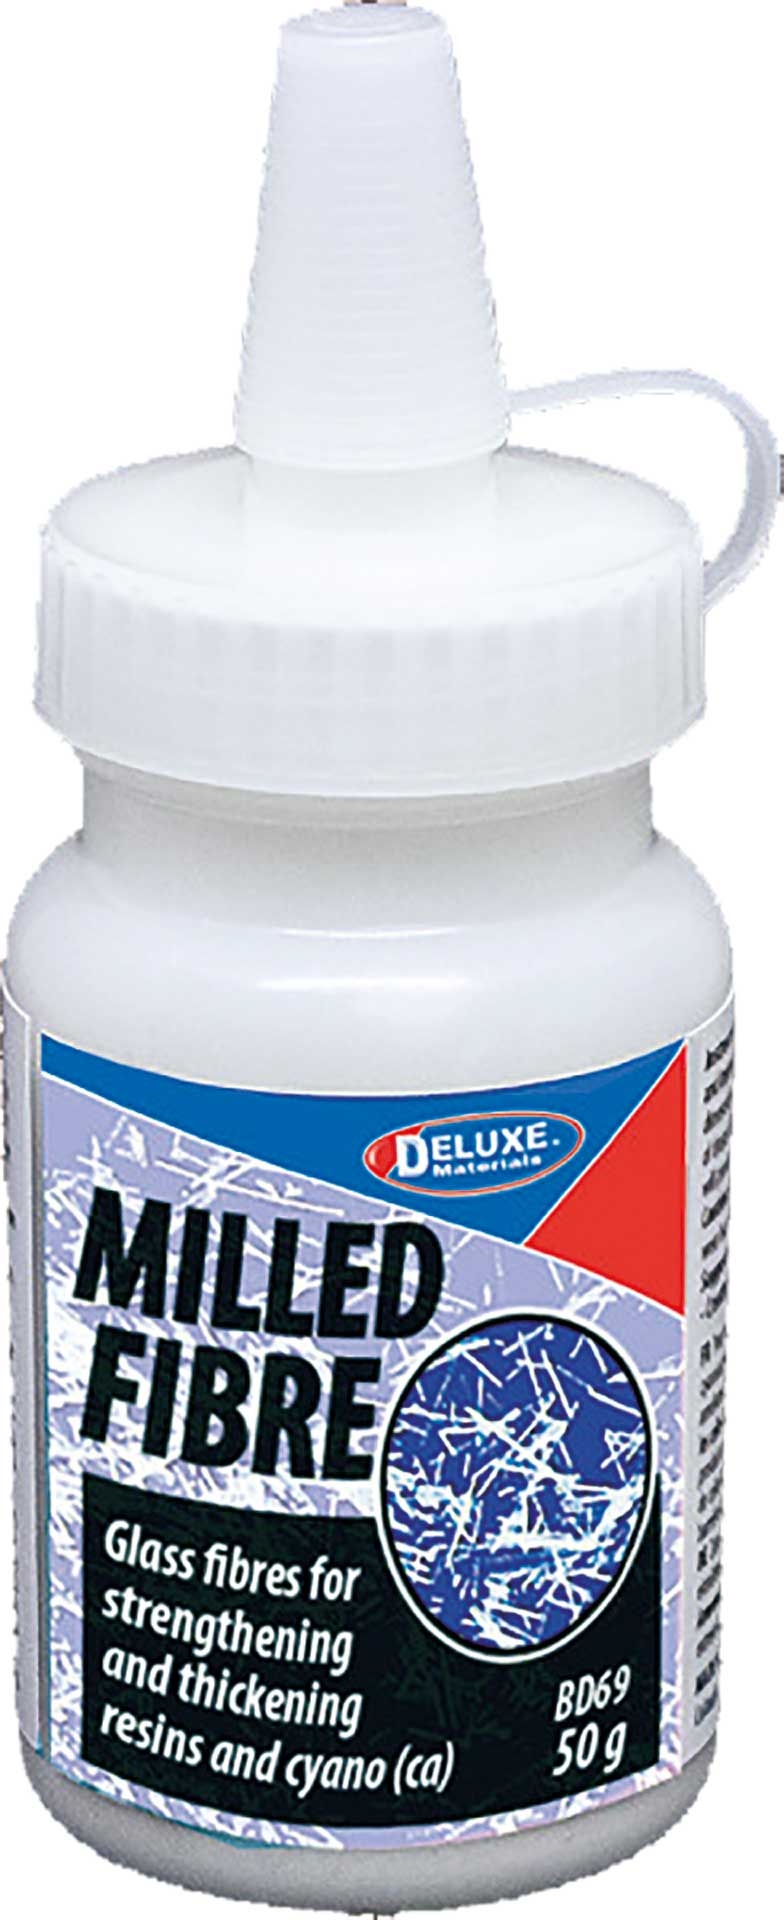 DELUXE MILLED FIBRE 50G